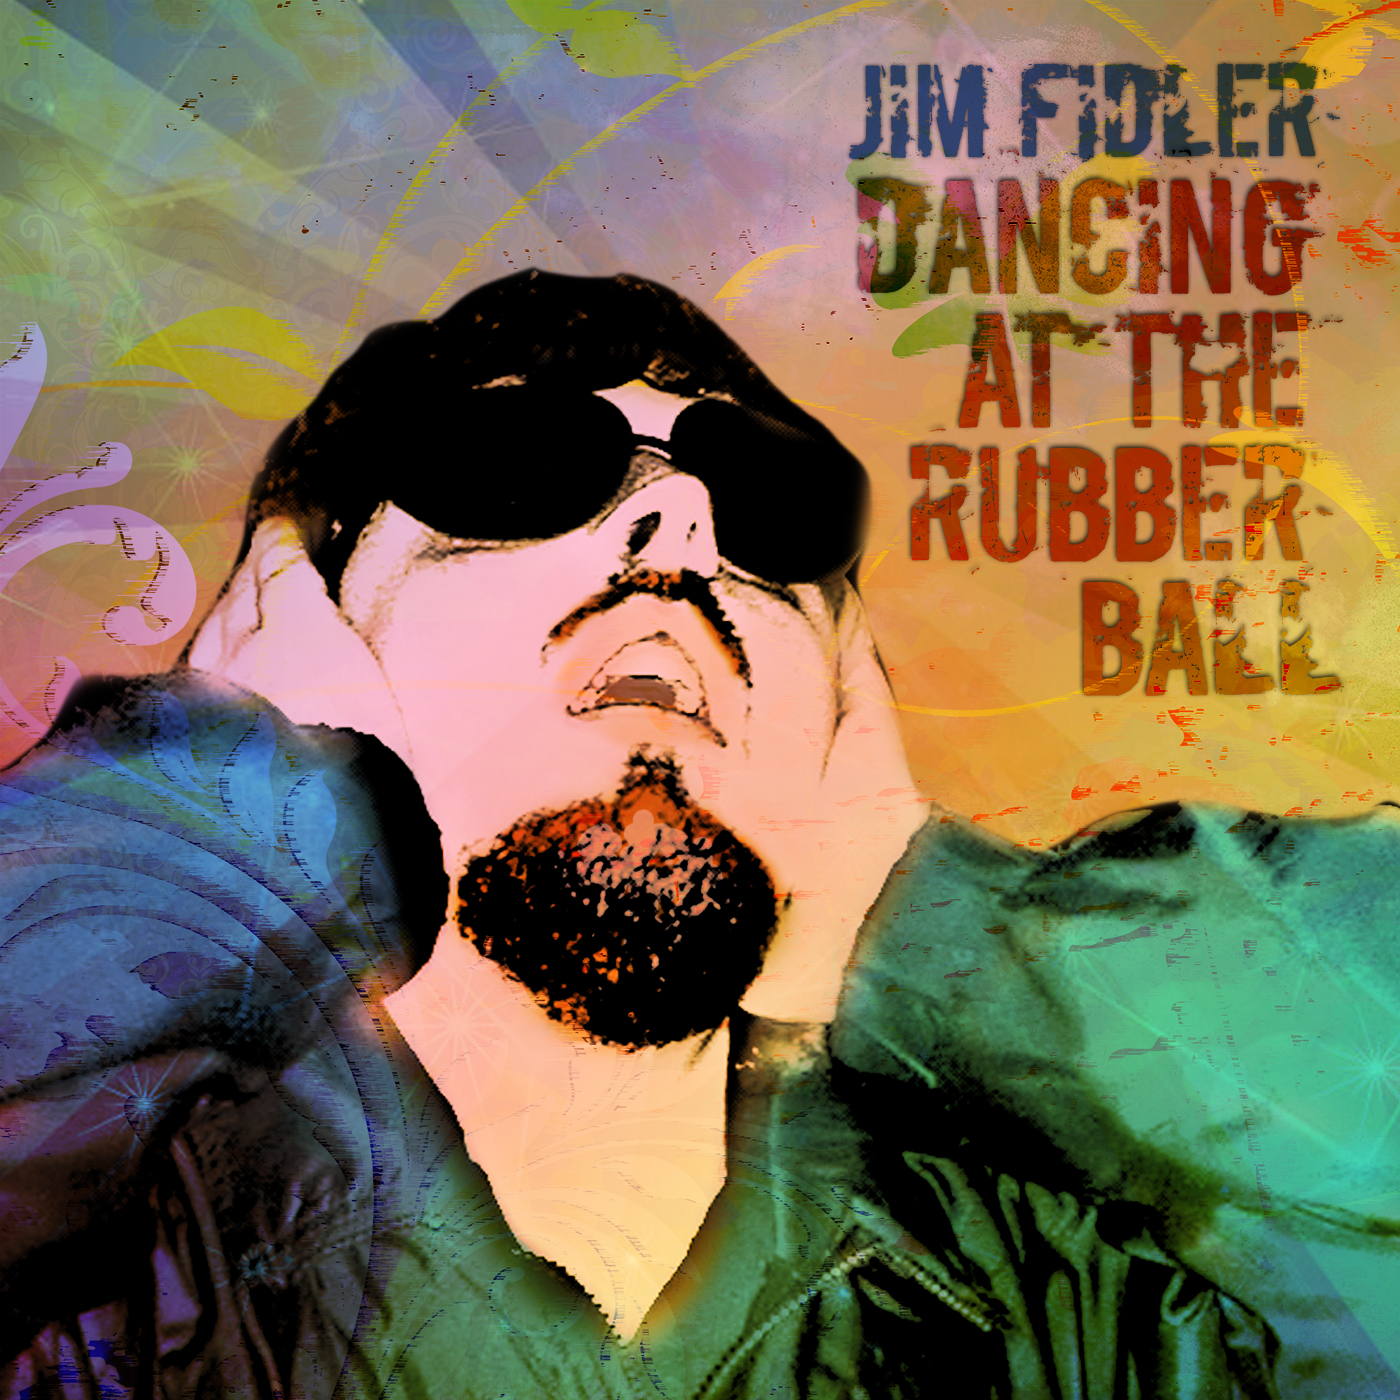 dancing at the rubber ball